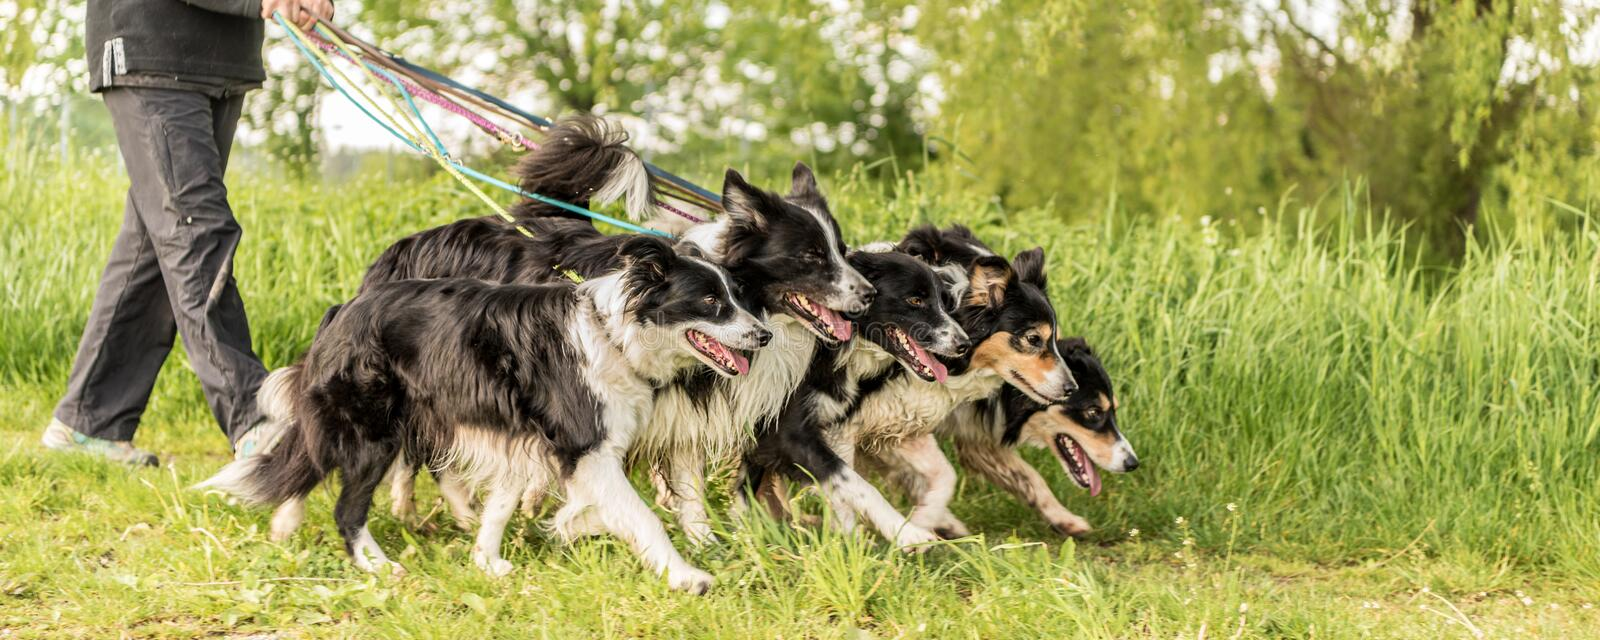 Walk with many dogs on a leash in the nature.  Border Collies stock photography